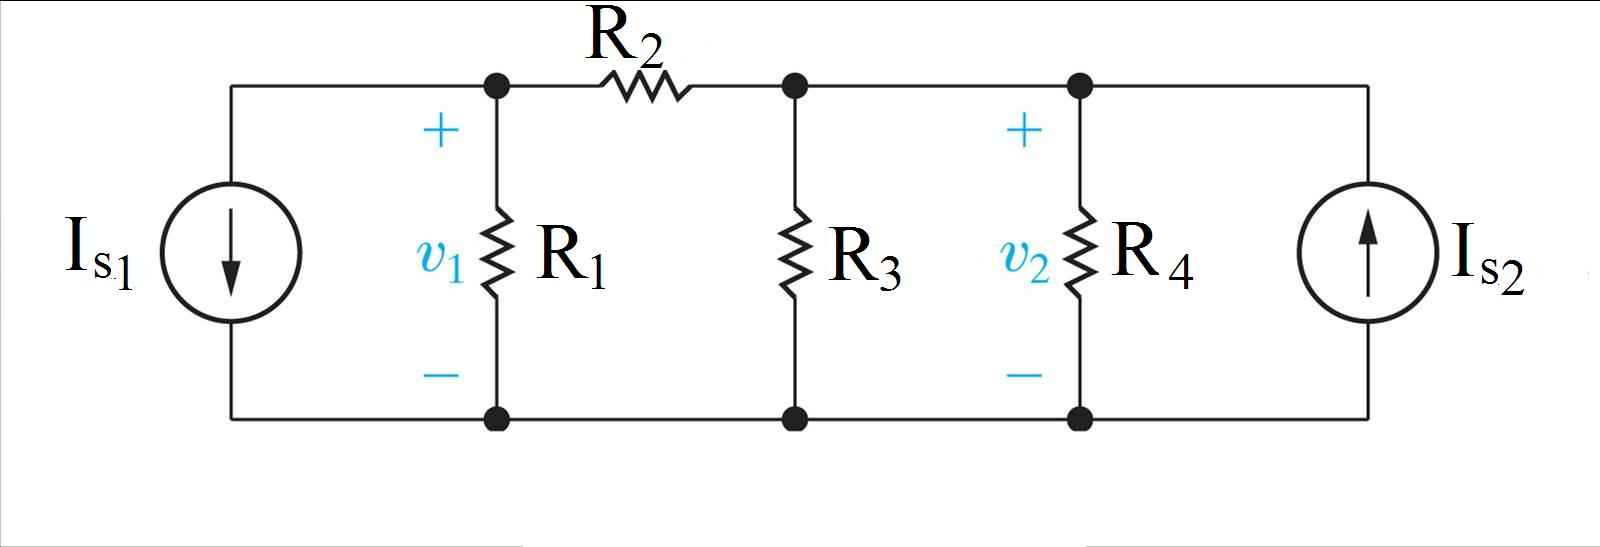 In the circuit, Is1 is 2.3 A, Is2 is 3.3 A, R1 i